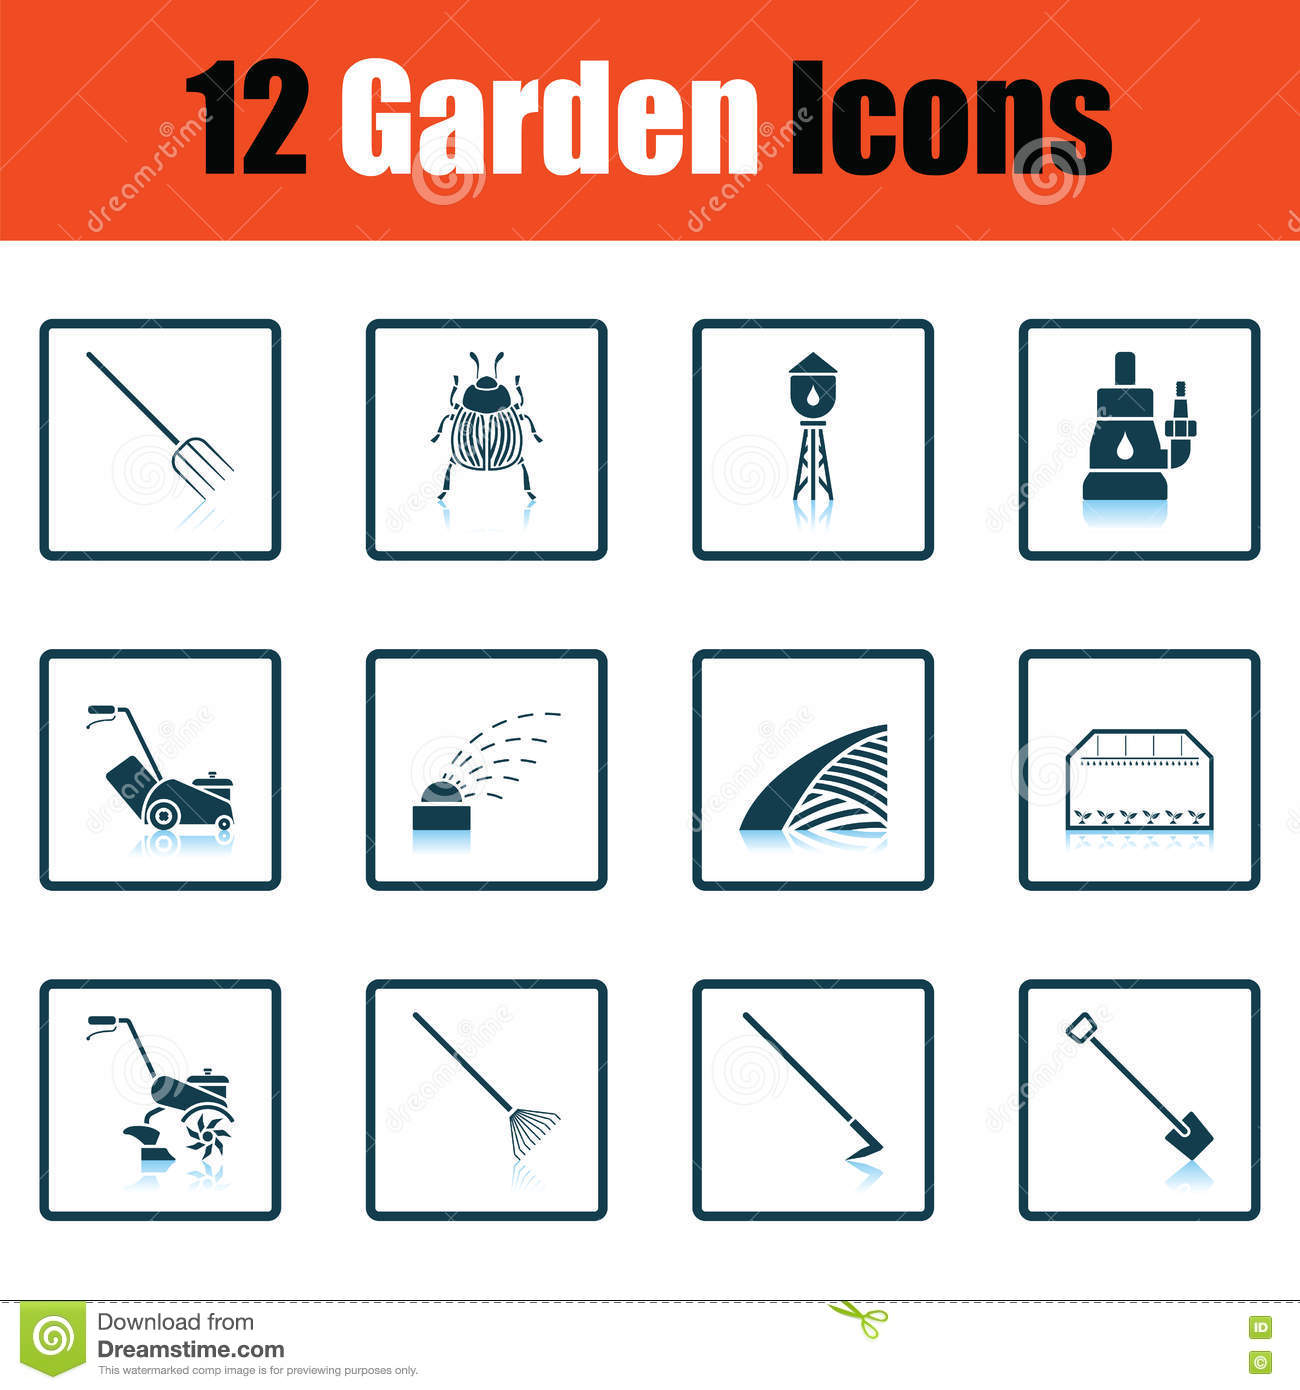 Lawn Mower Cartoons Illustrations Vector Stock Images